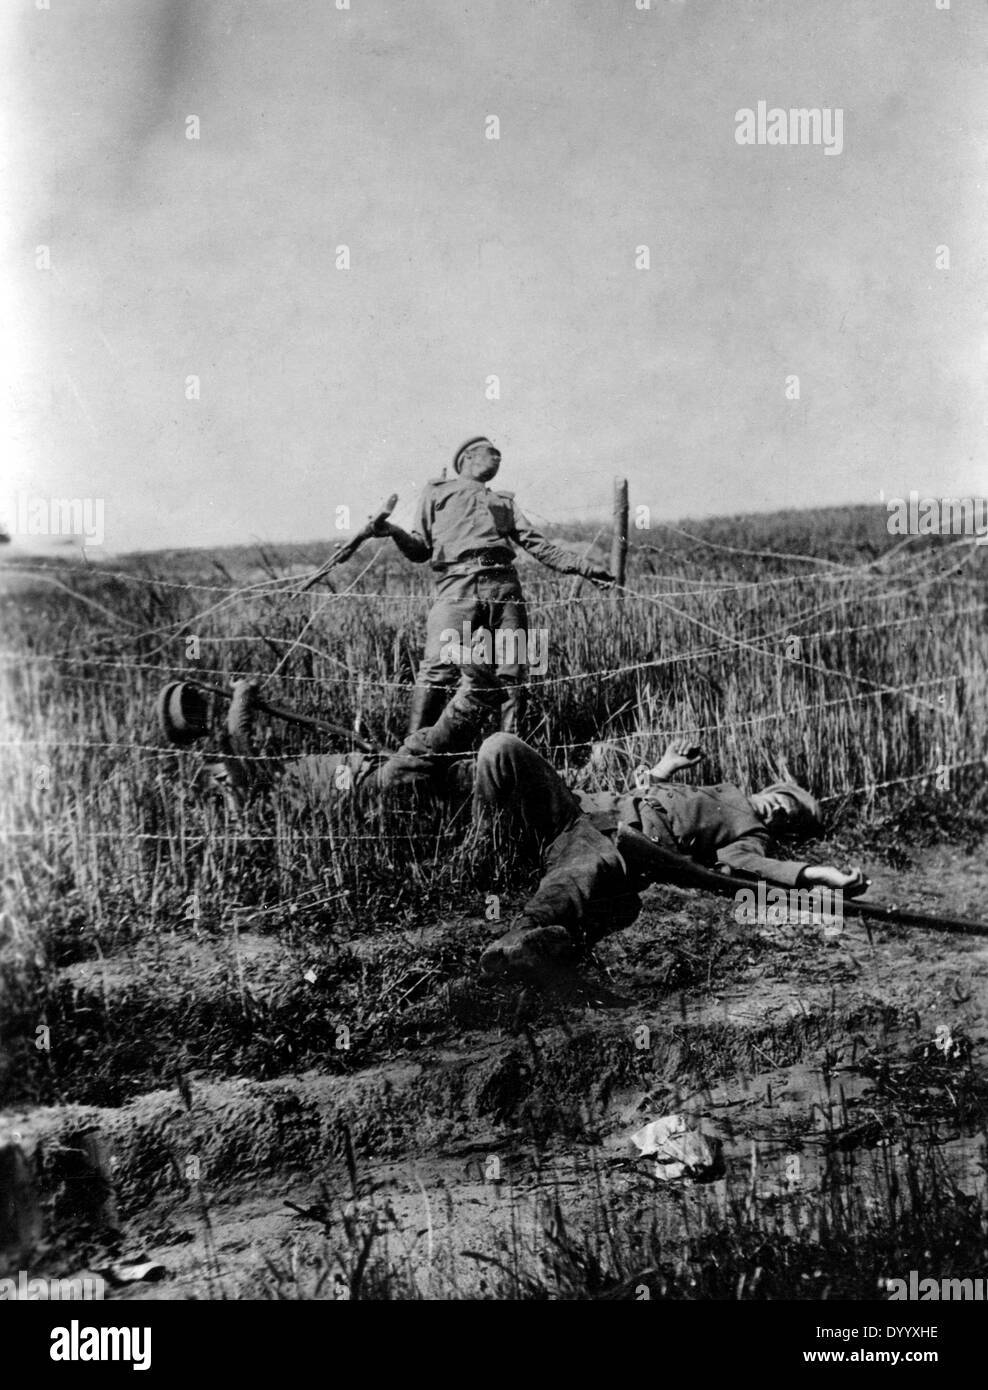 Wwi Soldiers Barbed Wire Stock Photos & Wwi Soldiers Barbed Wire ...